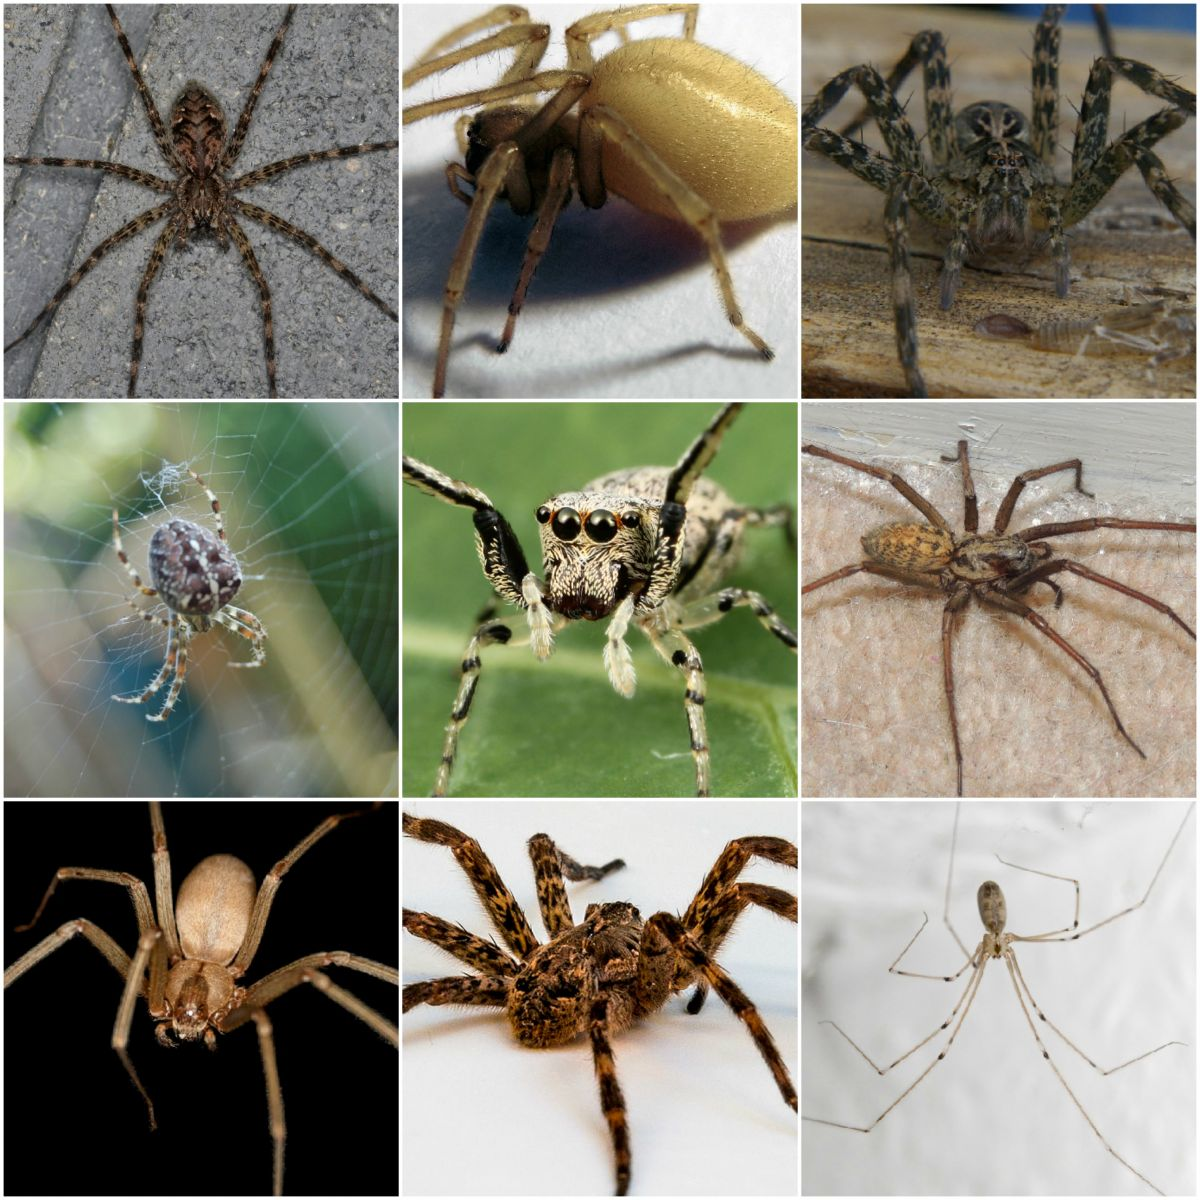 Common Spiders in Ontario